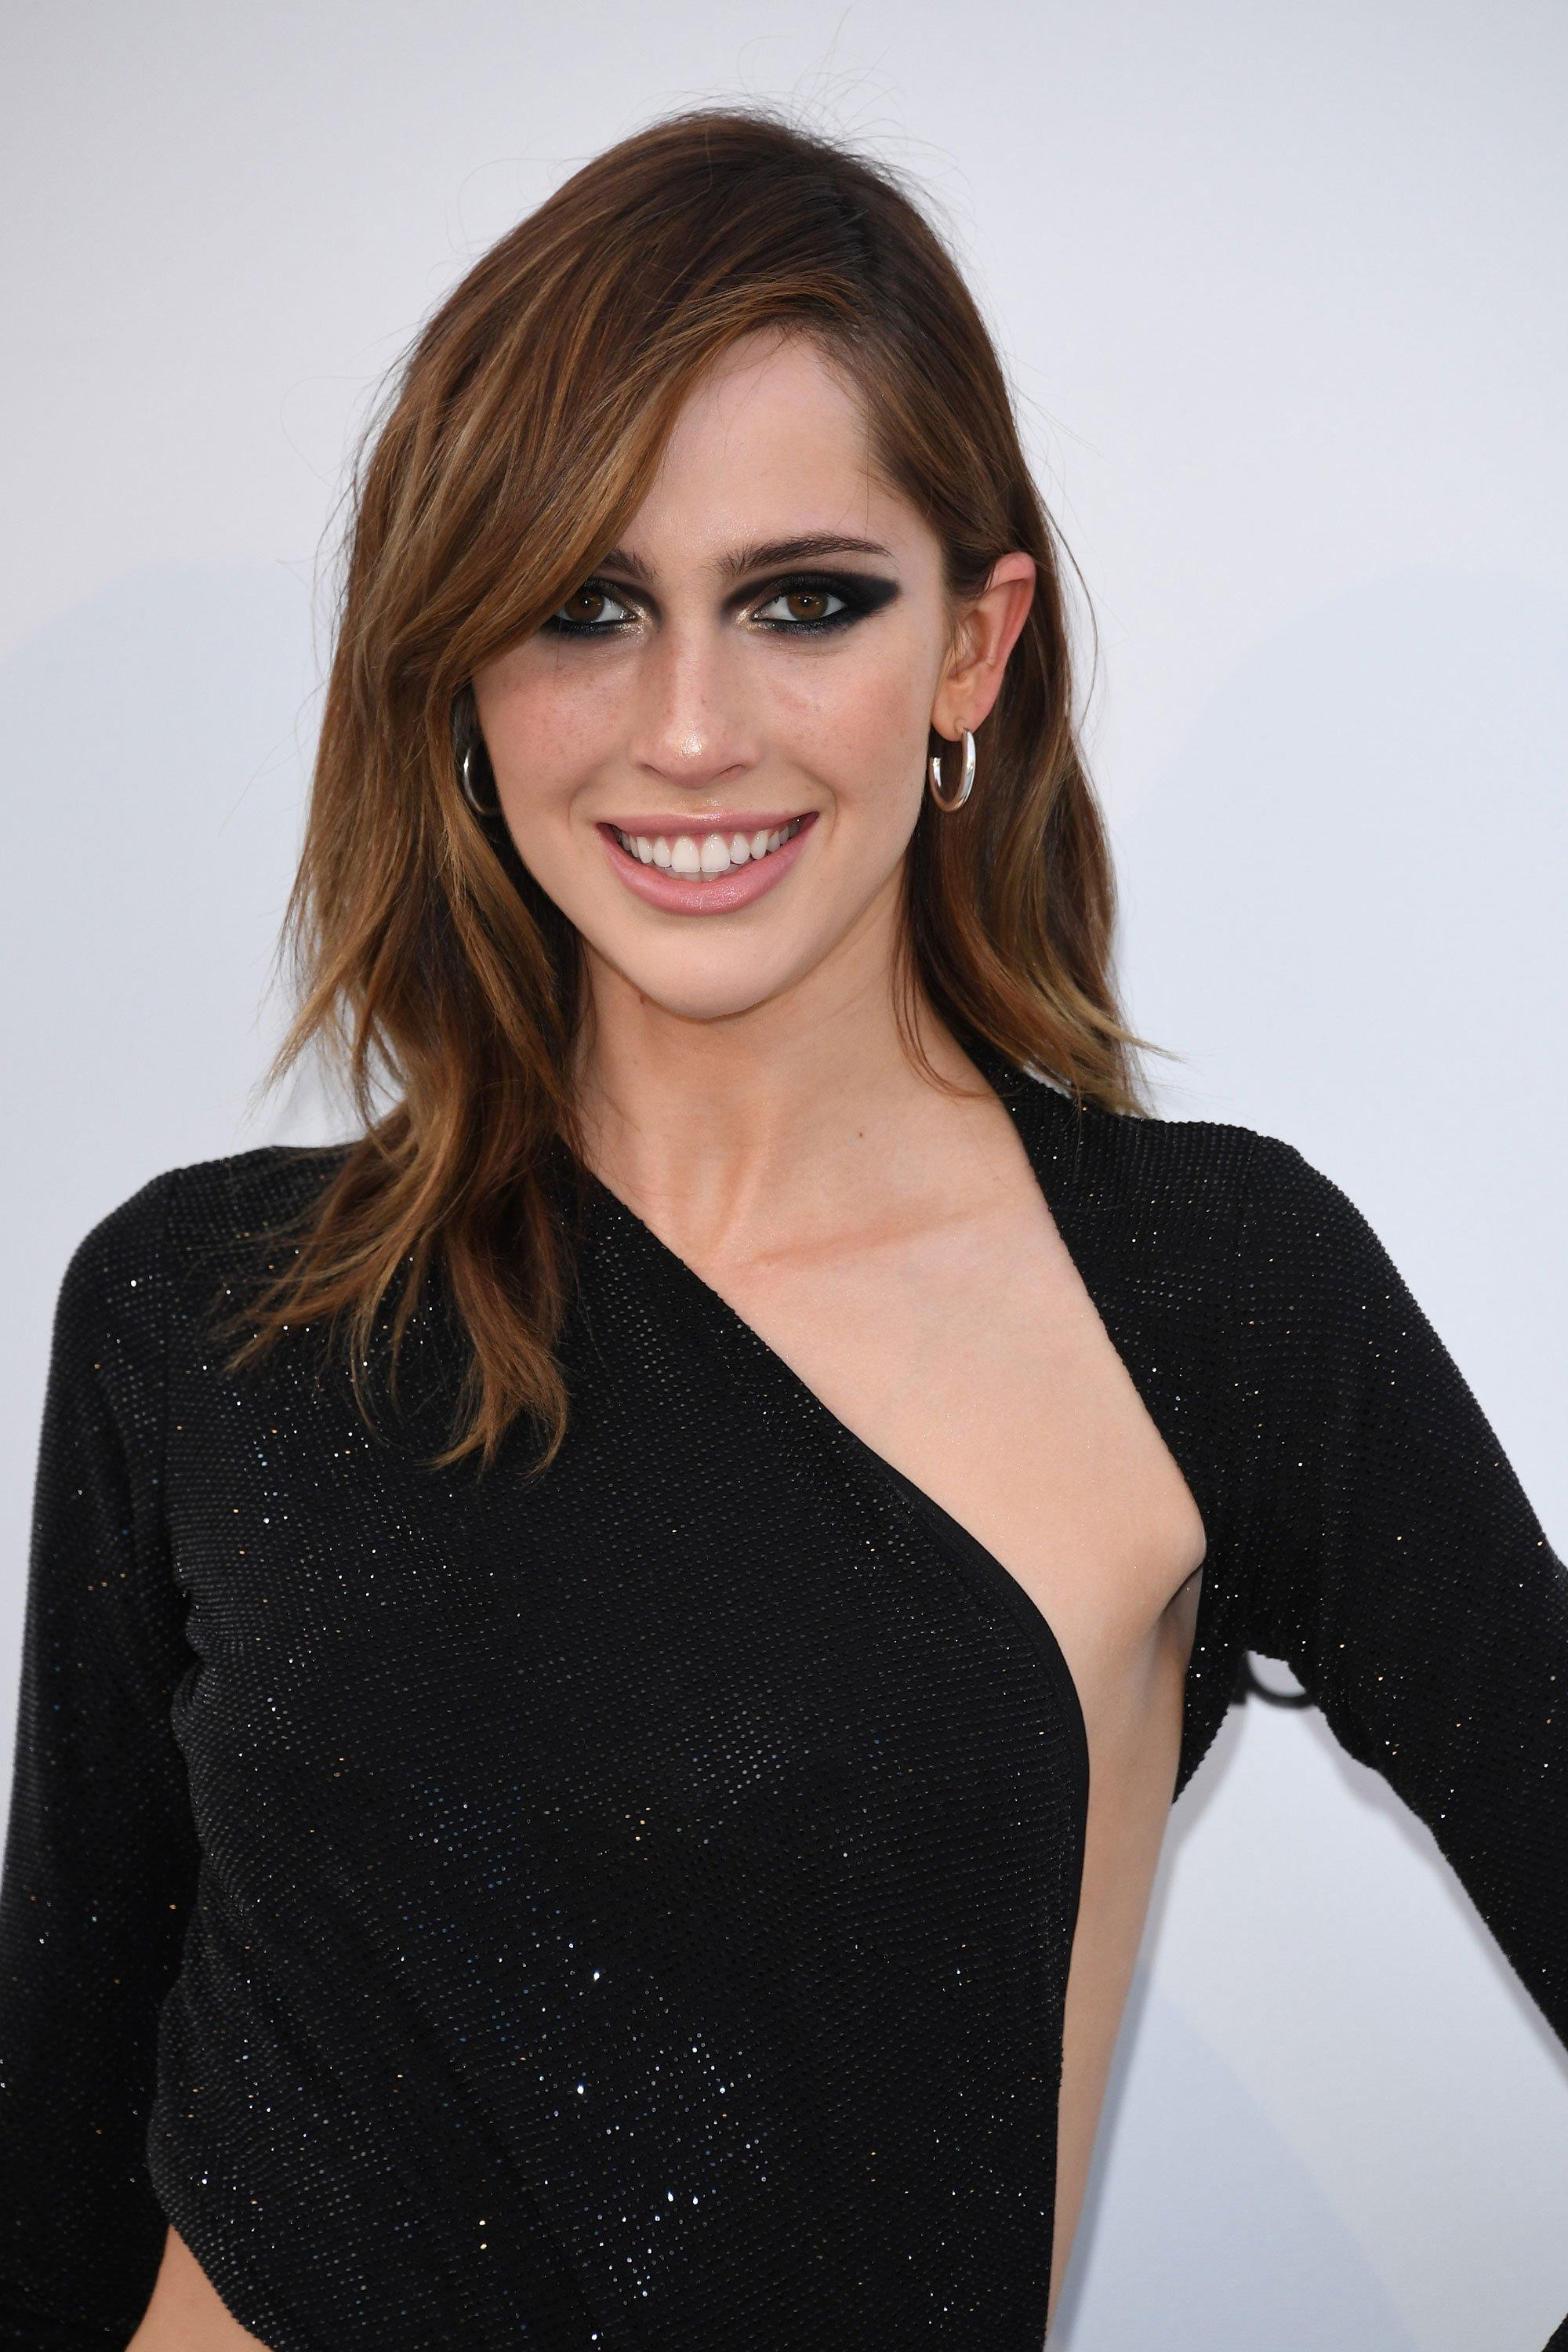 Transgender Model Teddy Quinlivan Is the New Face of Chanel Beauty